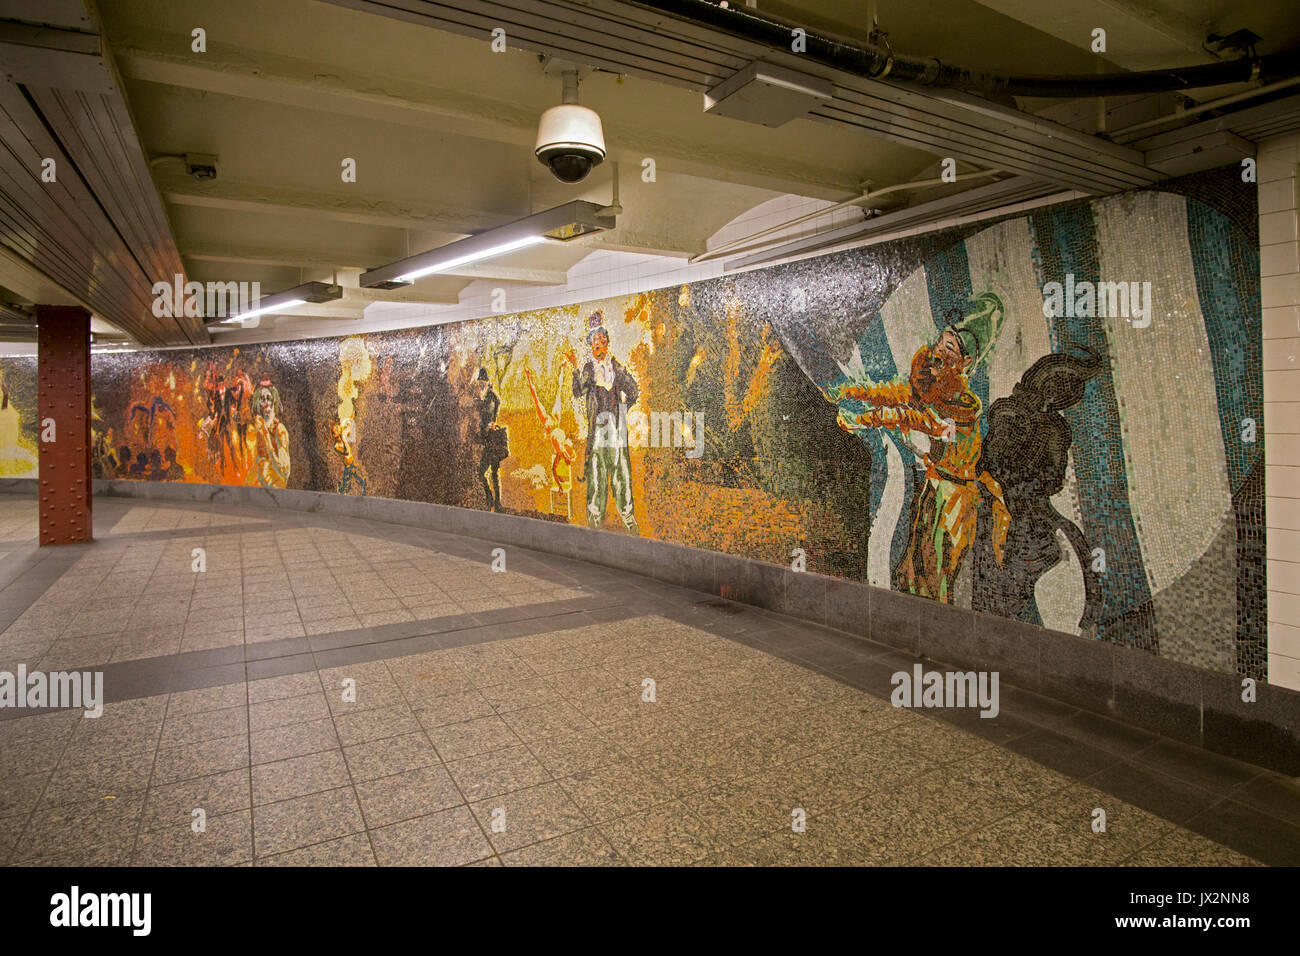 Mosaic art work at the 34th street penn station subway station in manhattan new york